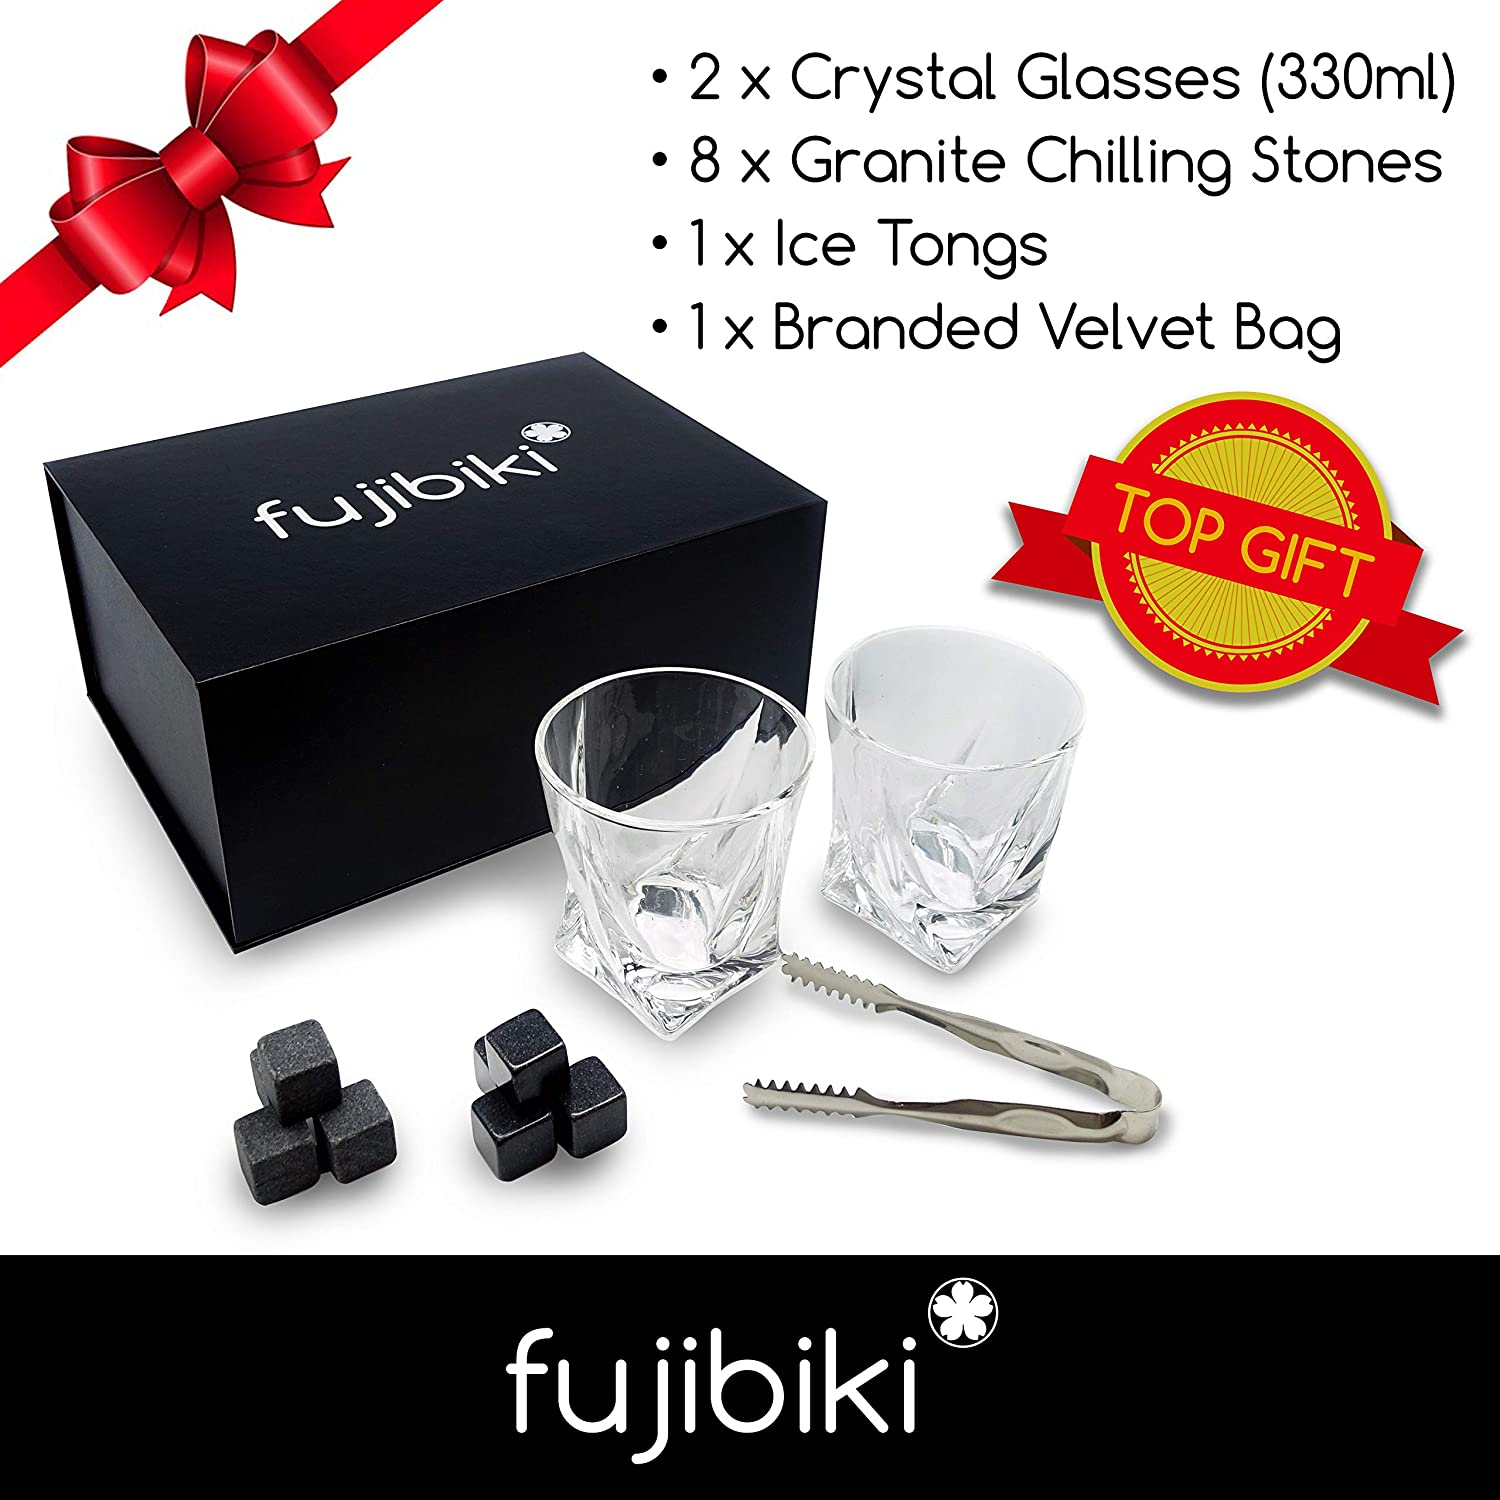 Premium Whiskey Glasses and Stones Gift Set 8 Granite Chilling Stones, 2 Crystal Glasses 330ml 10oz , Velvet Bag, Ice Tongs, Packed in a Gift Box by Fujibiki Whisky, Bourbon, Scotch and Liquors.